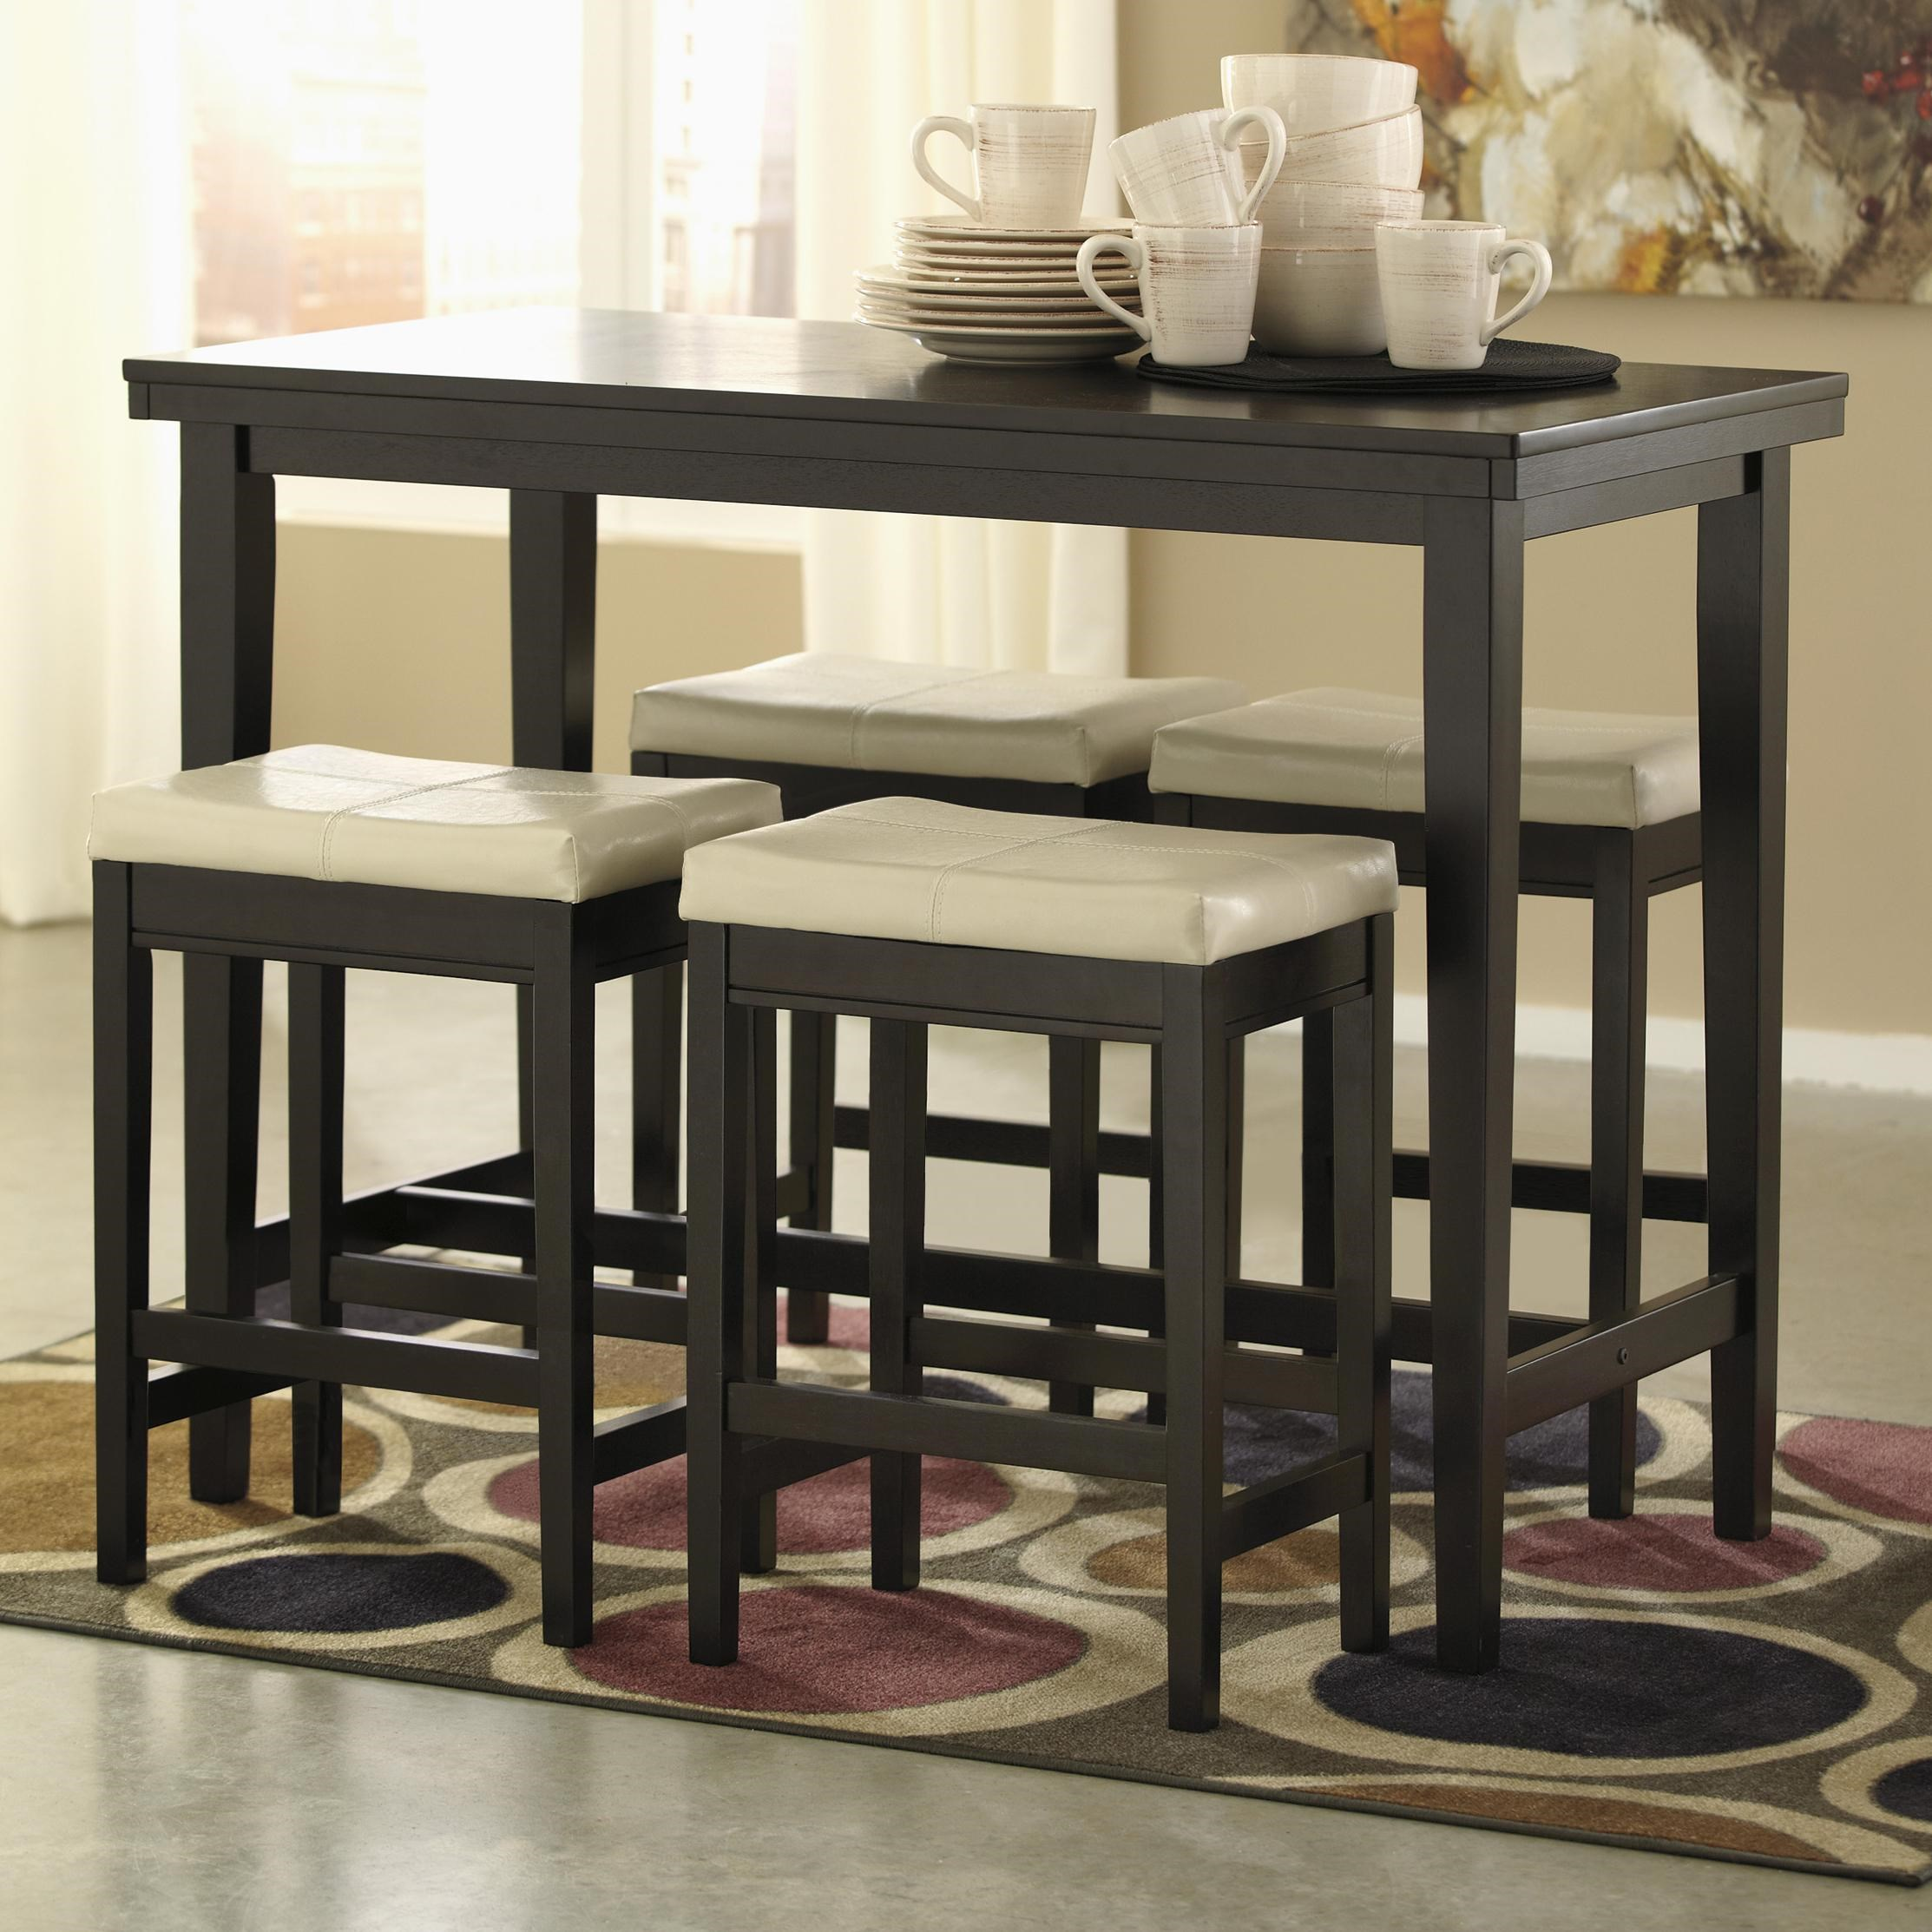 Signature Design by Ashley Kimonte 5-Piece Counter Table Set with Ivory Upholstered Stools : counter tables sets - pezcame.com